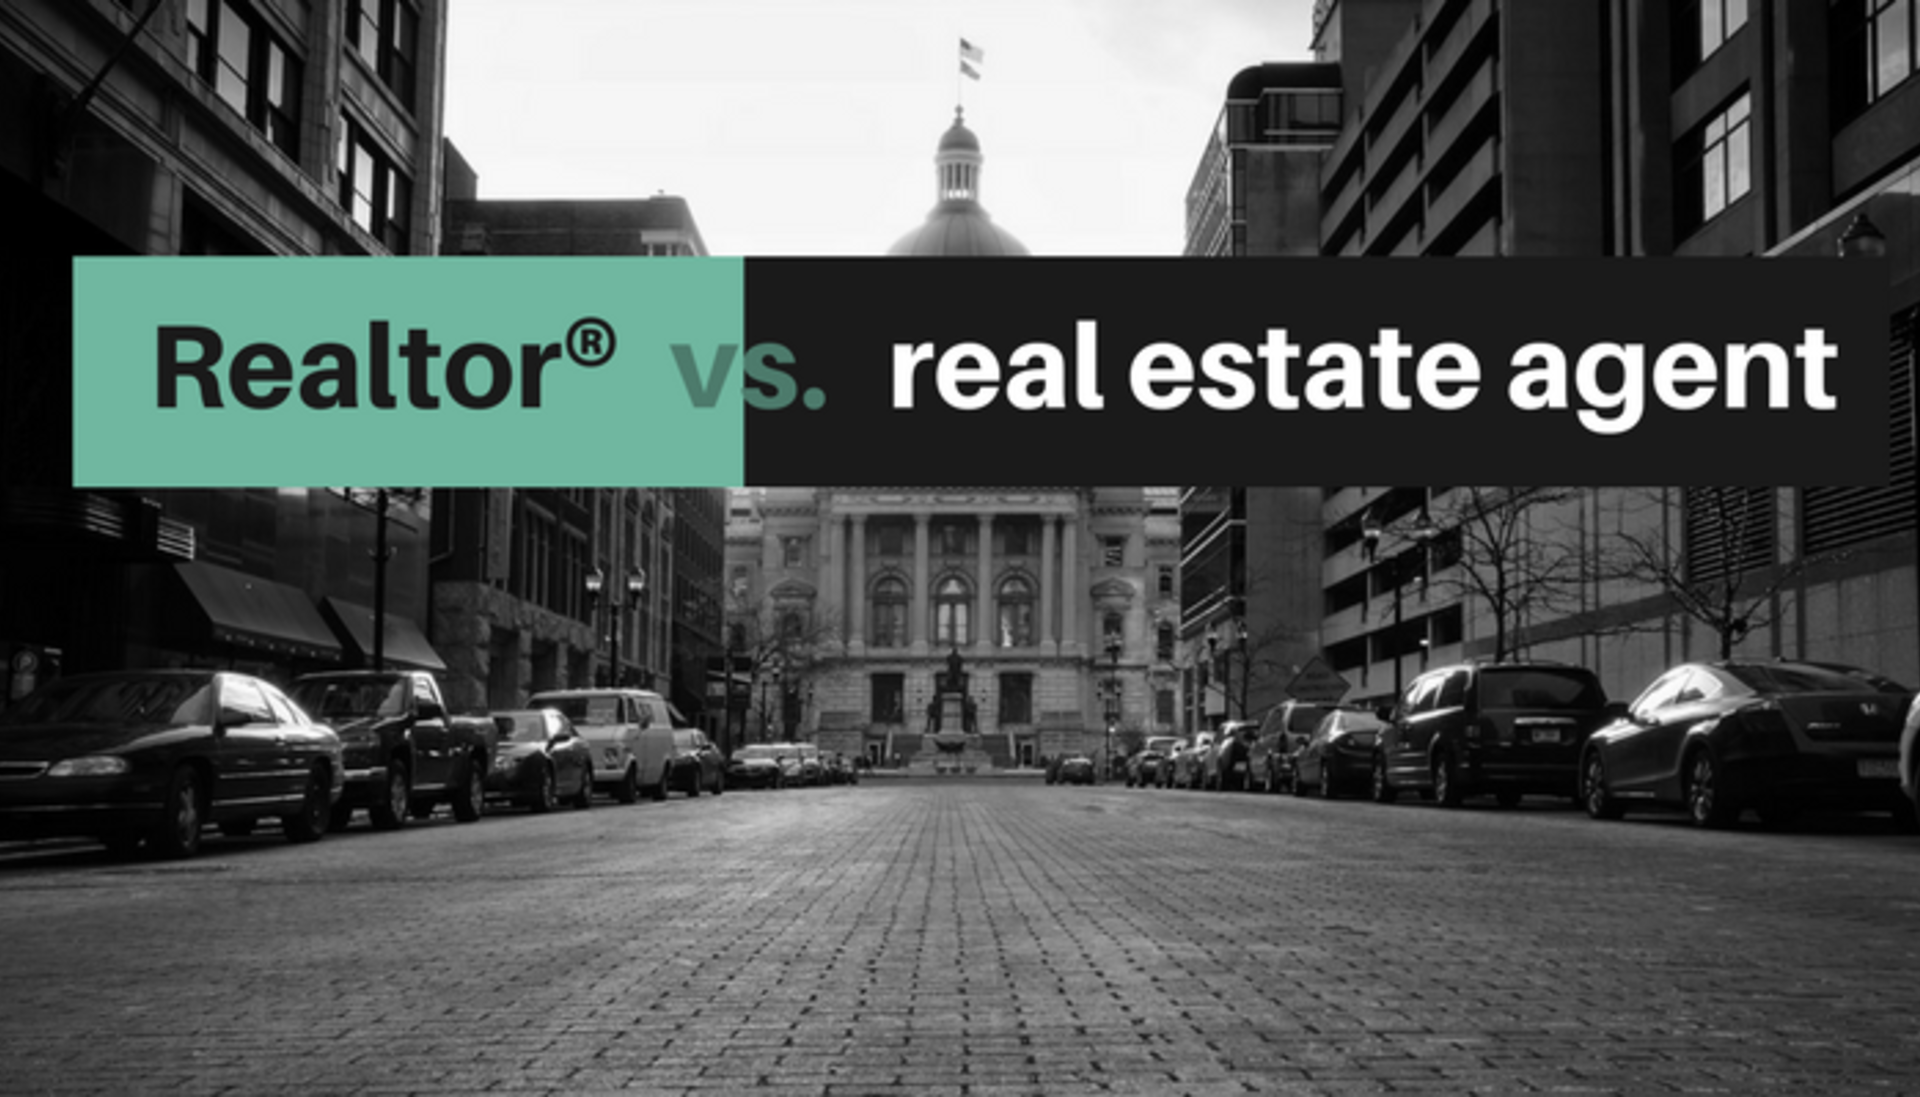 What's the Difference between a Realtor® and a real estate agent?